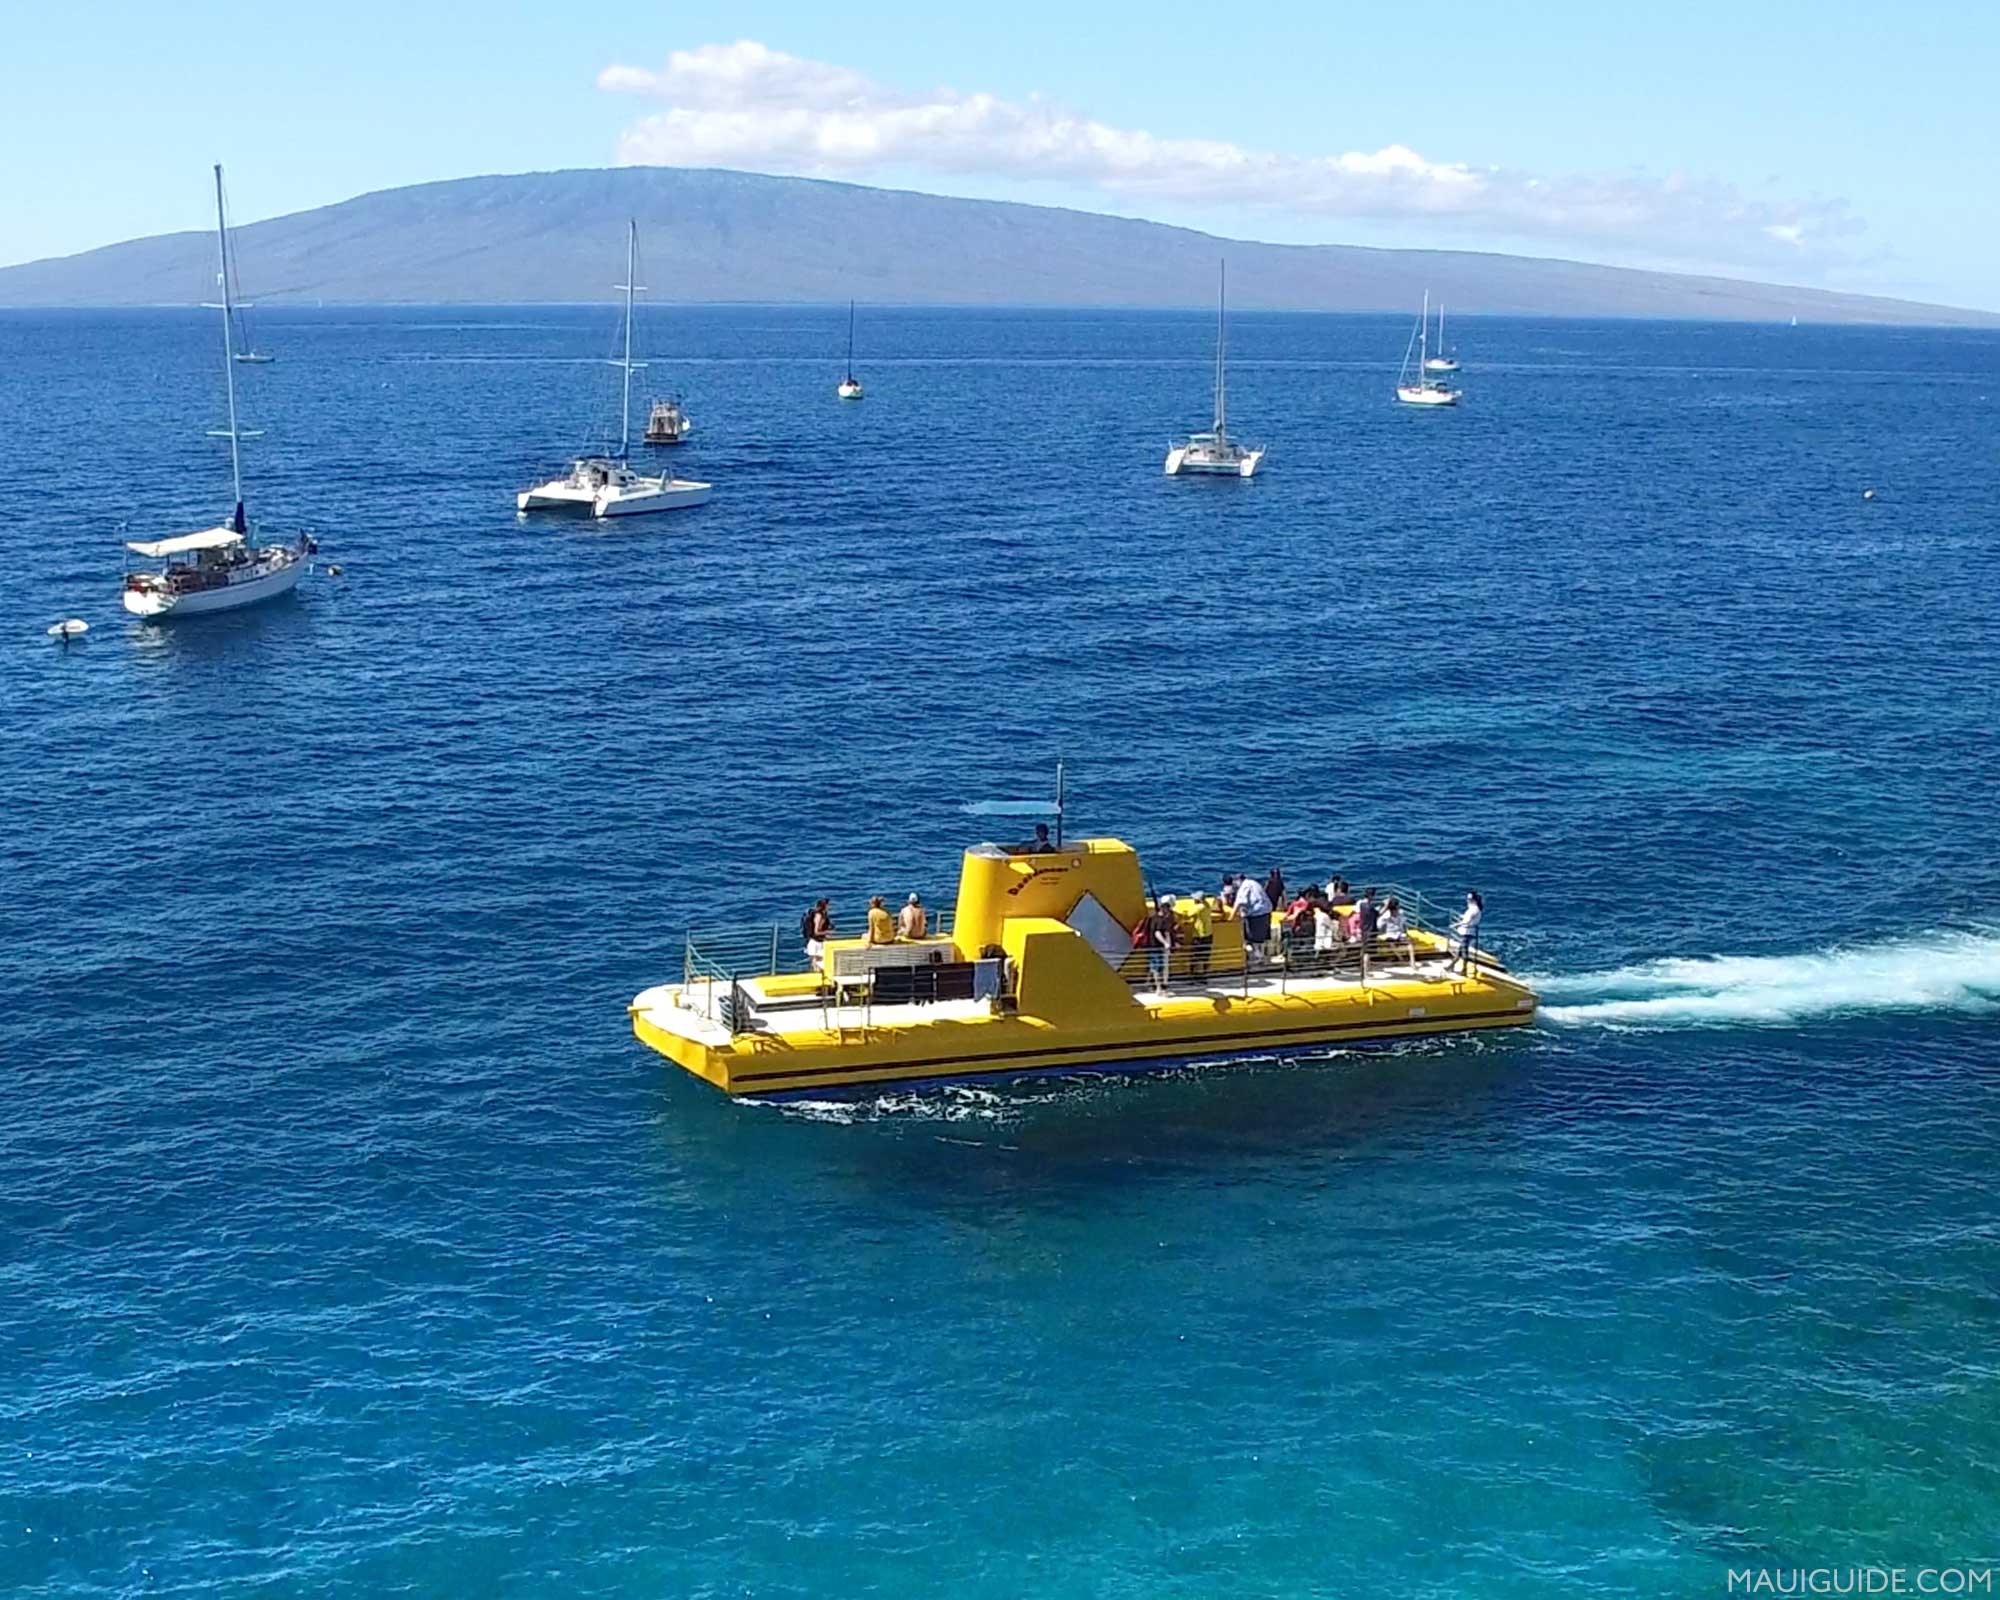 reefdancer in Maui Hawaii unusual things to do in maui